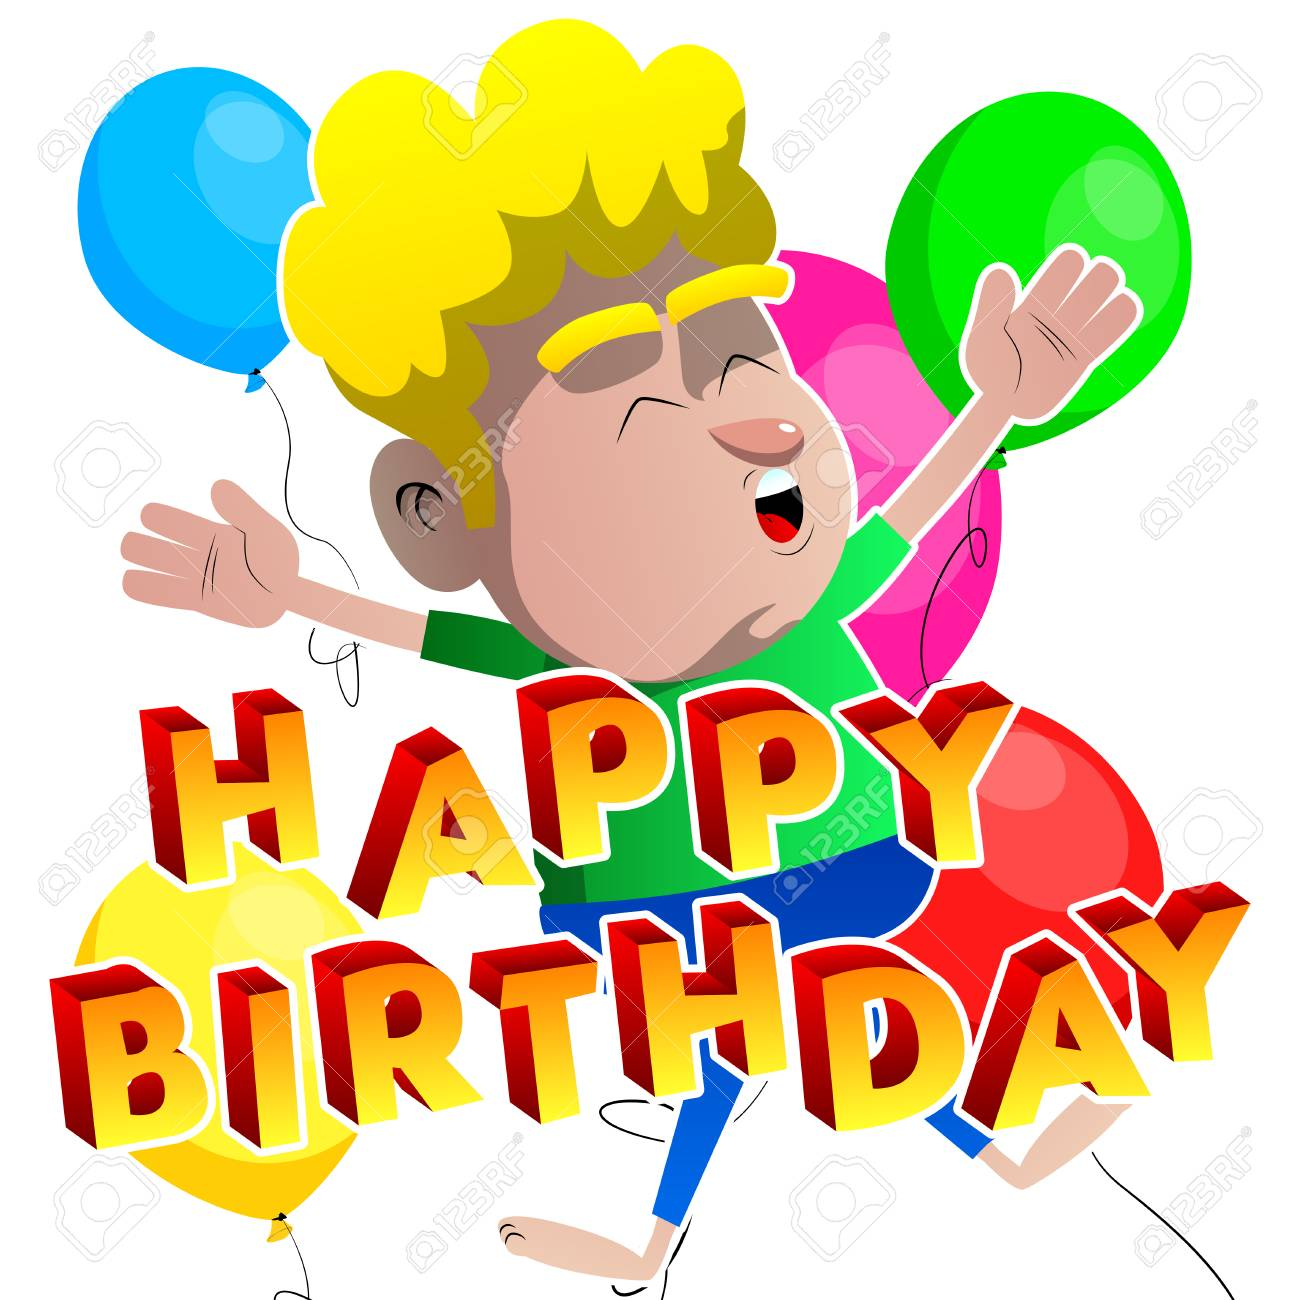 Boy Jumping With Happy Birthday Text In Front Of Him And Balloons On The Background